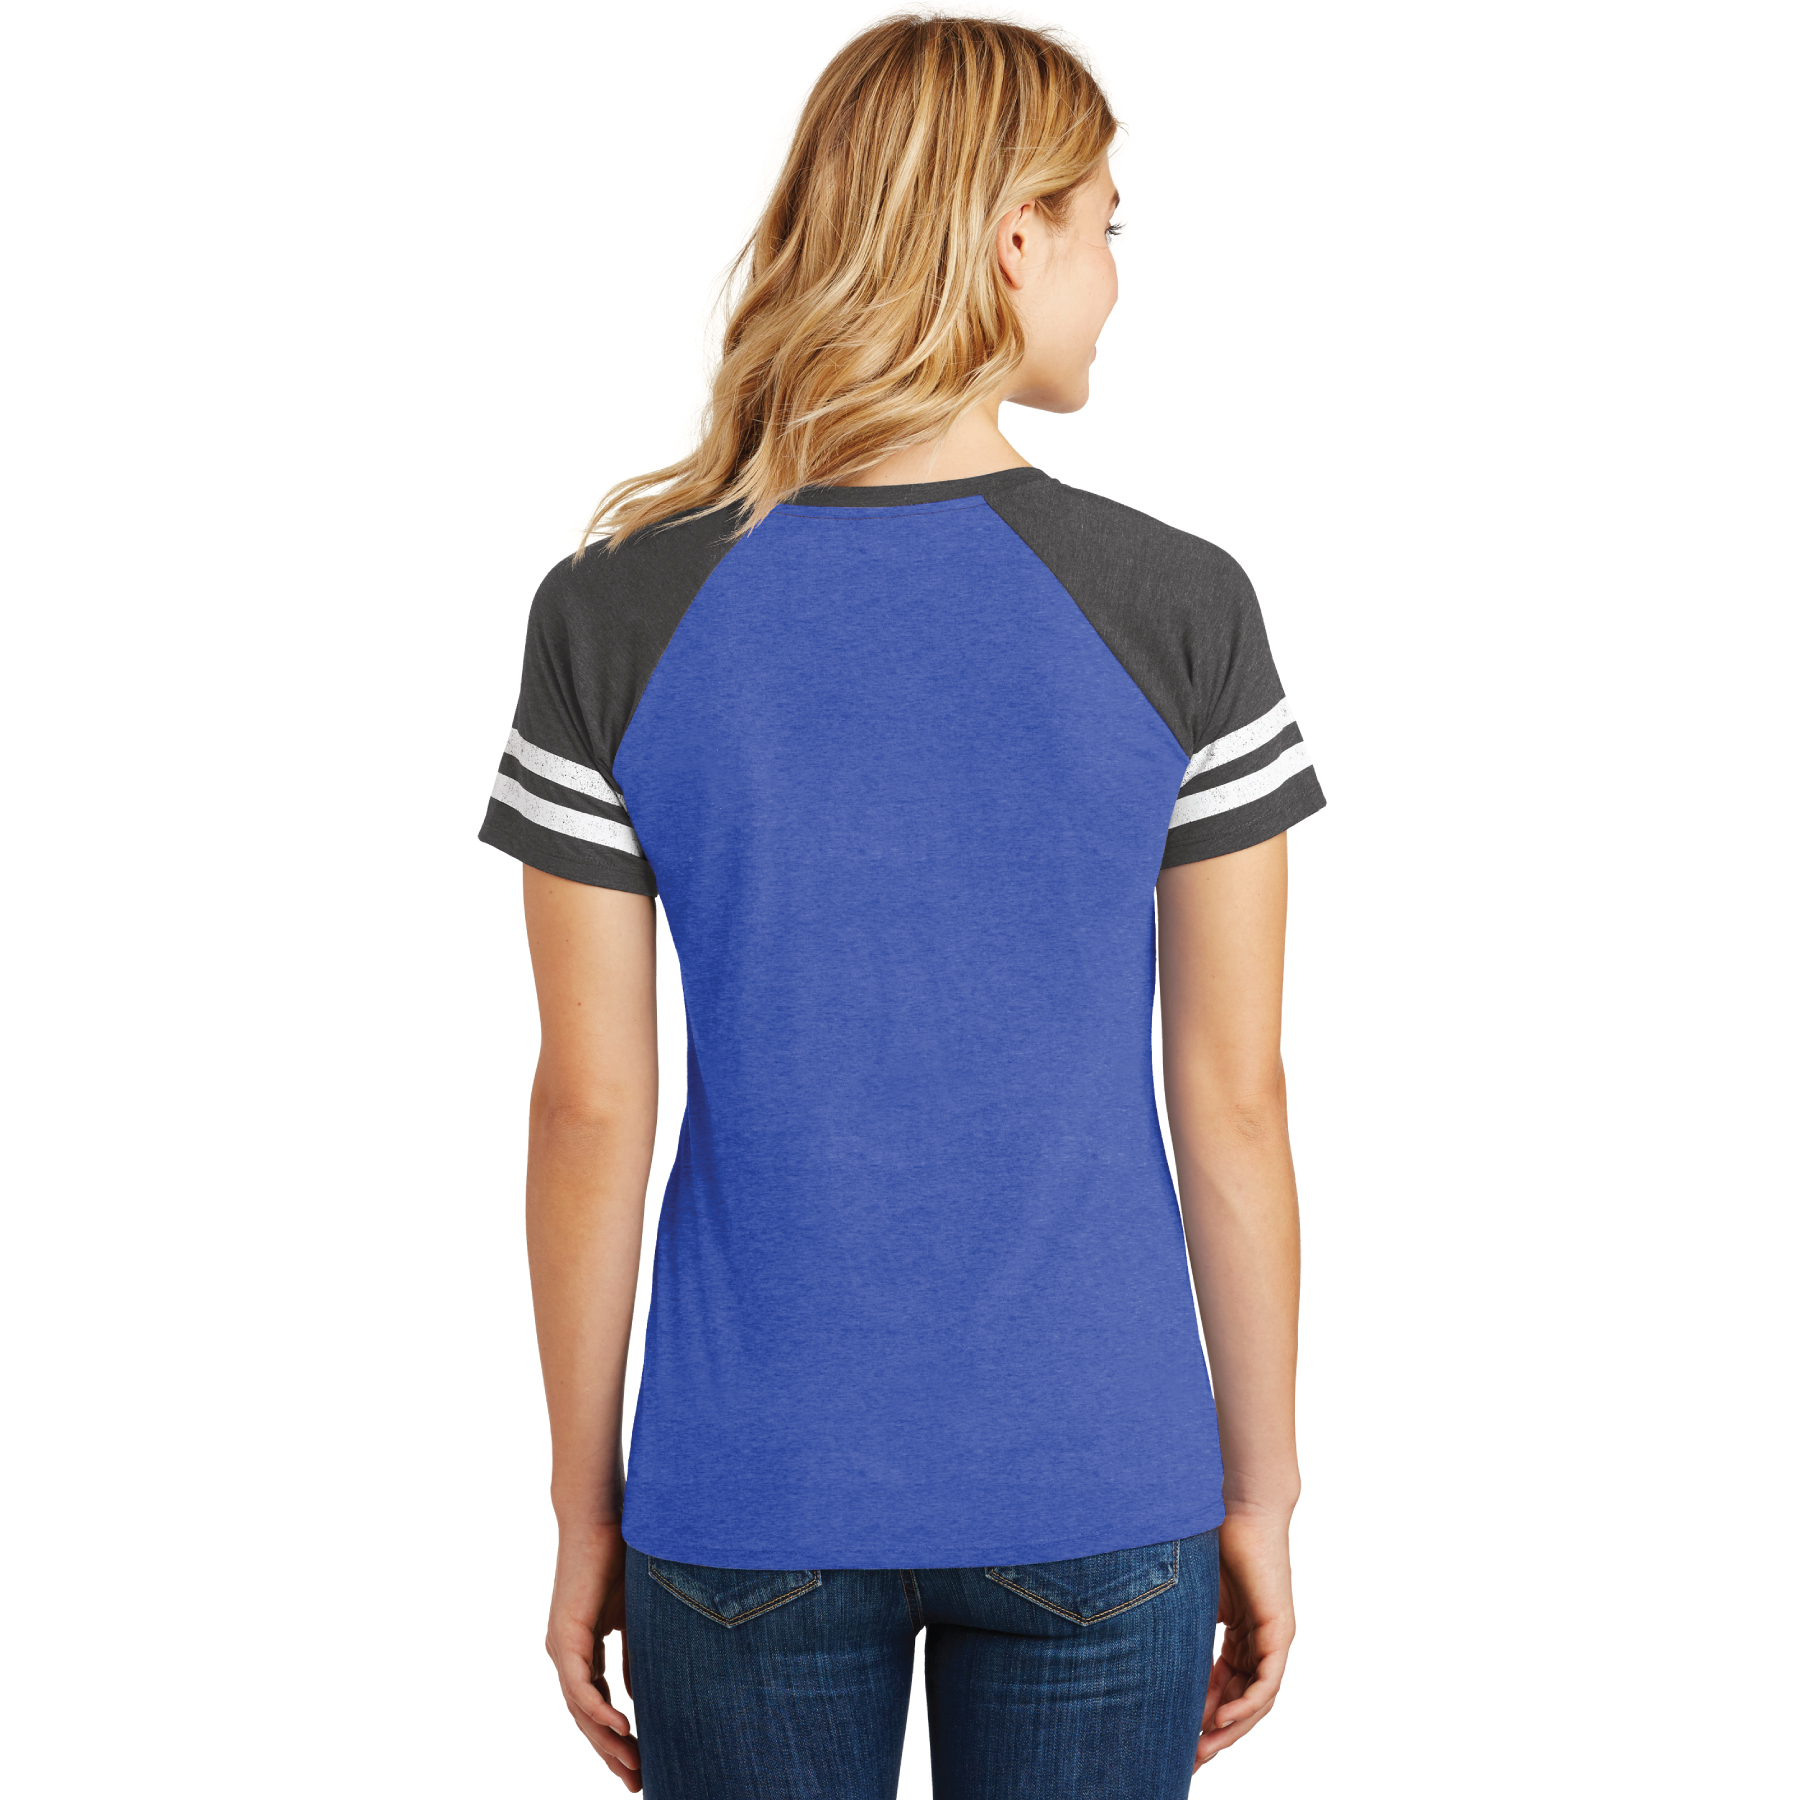 Ladies Game Day V-Neck Tee Bling - RCL4096